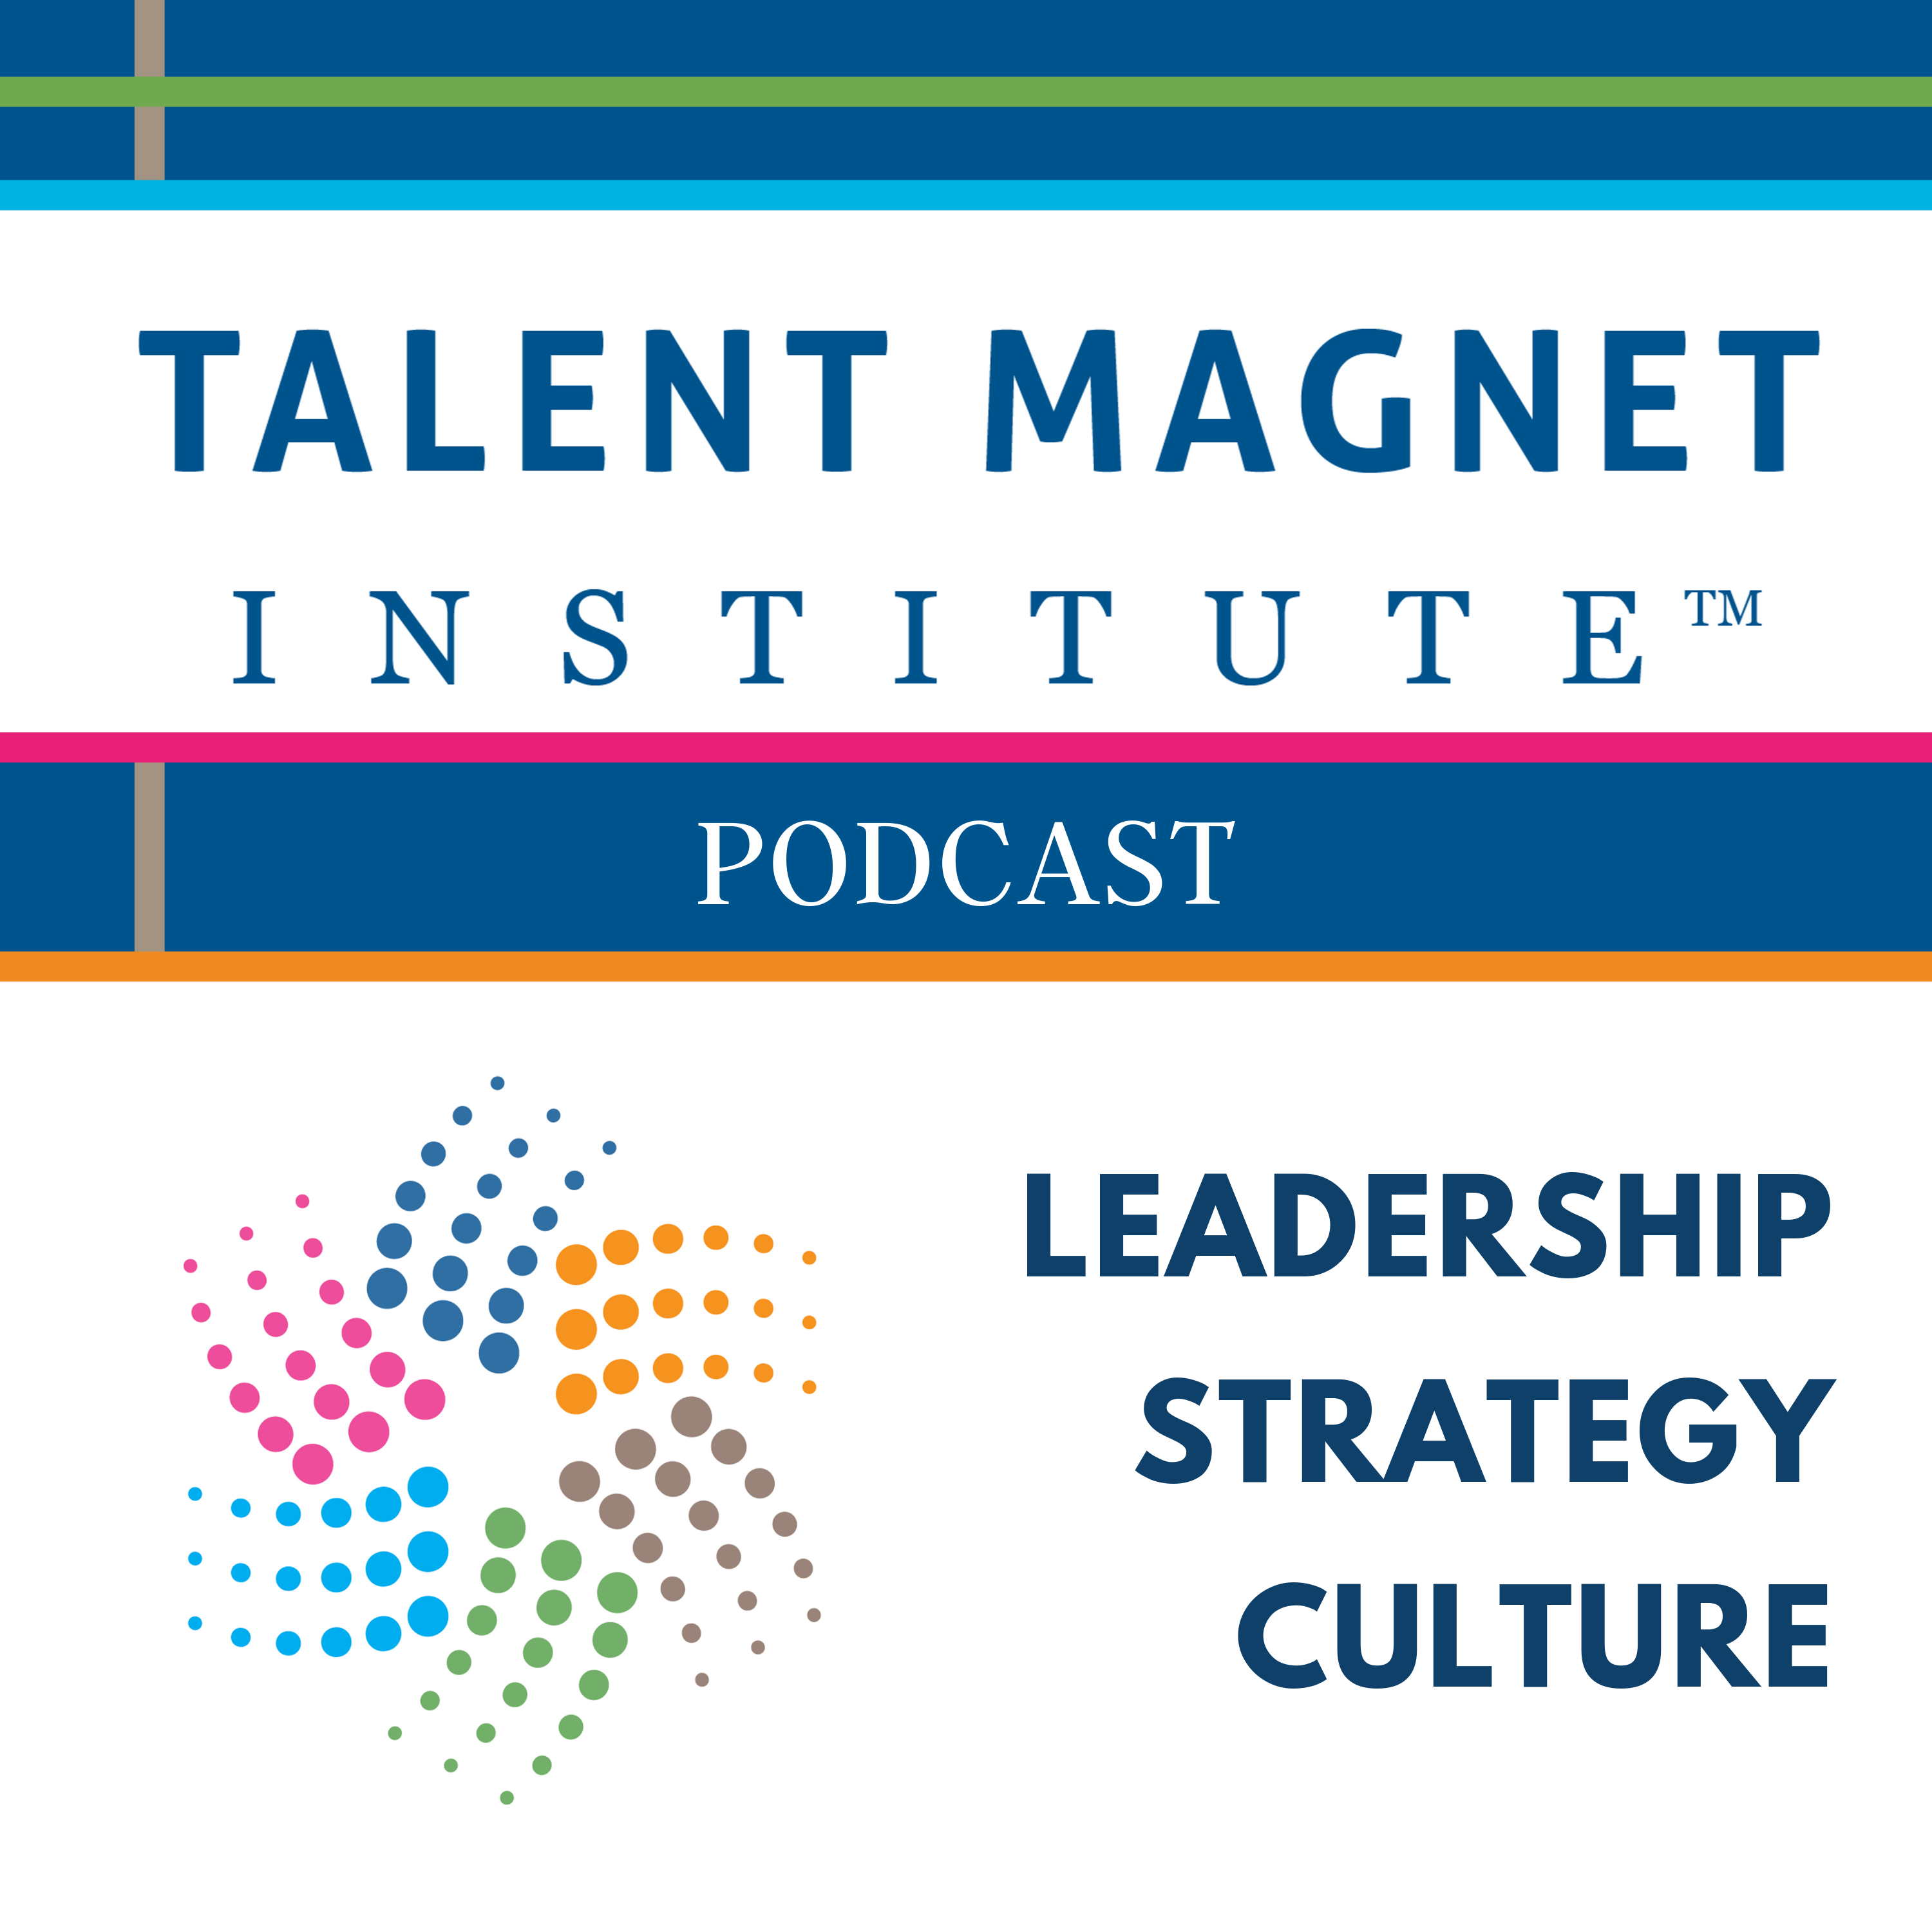 Leadership Strategy and Balance During Change with Daniel Wachter